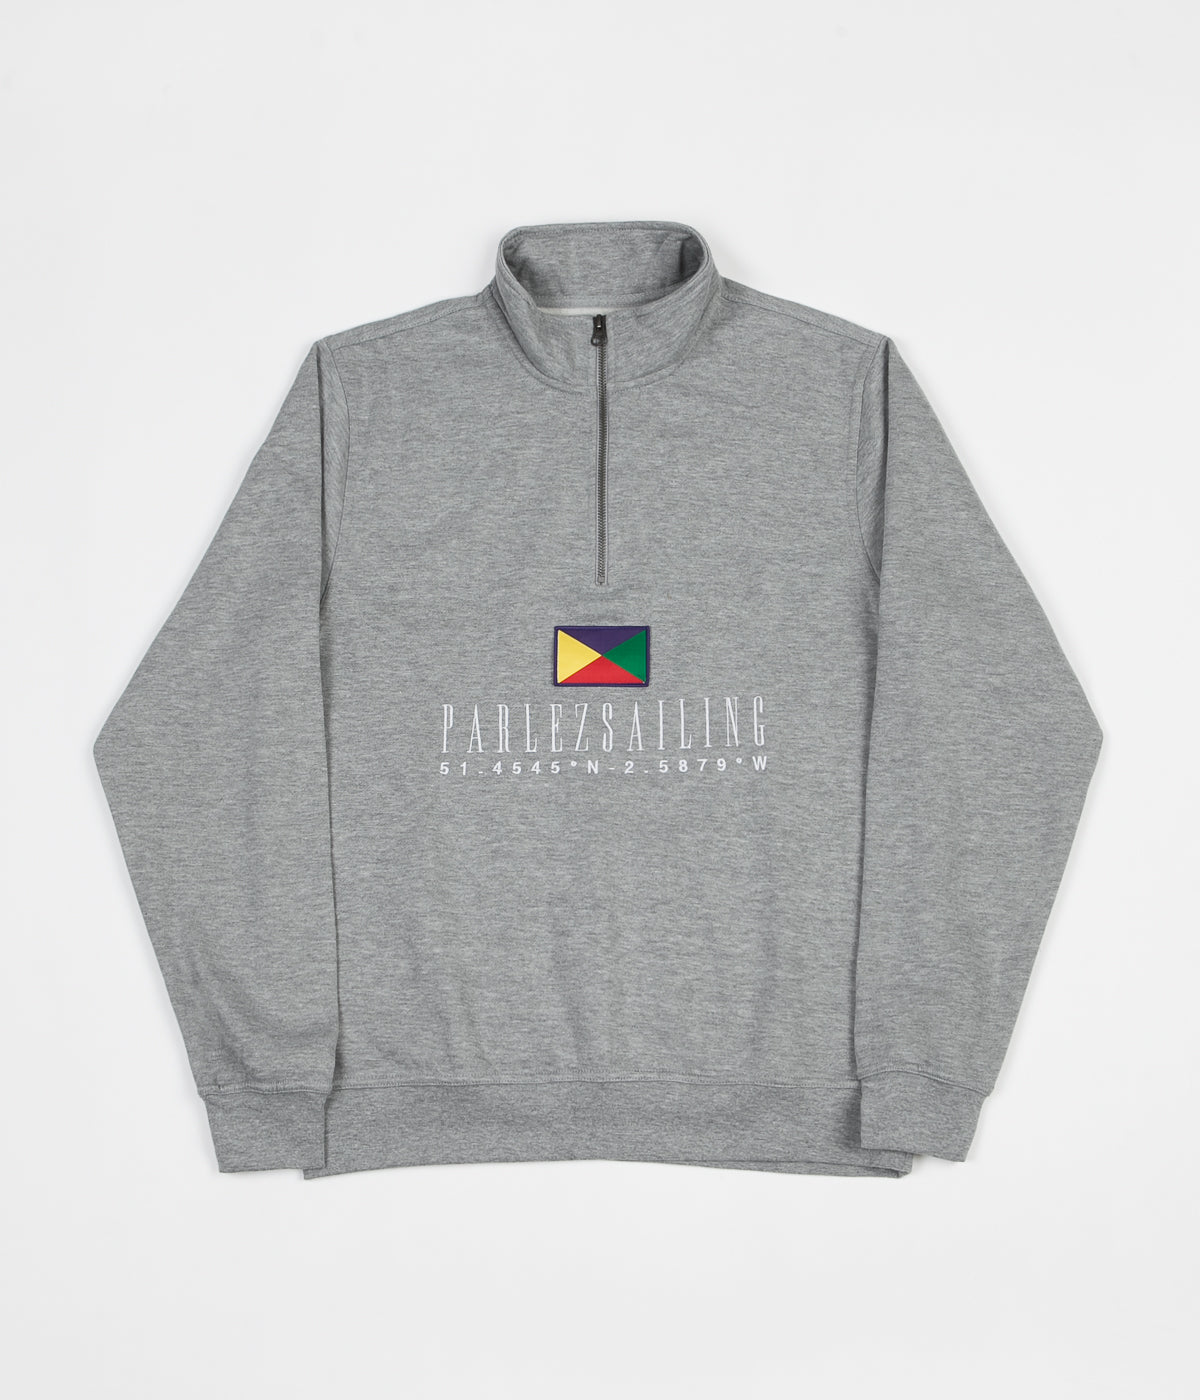 Parlez x Flatspot Hanuman 1/4 Zip Sweatshirt - Heather Grey